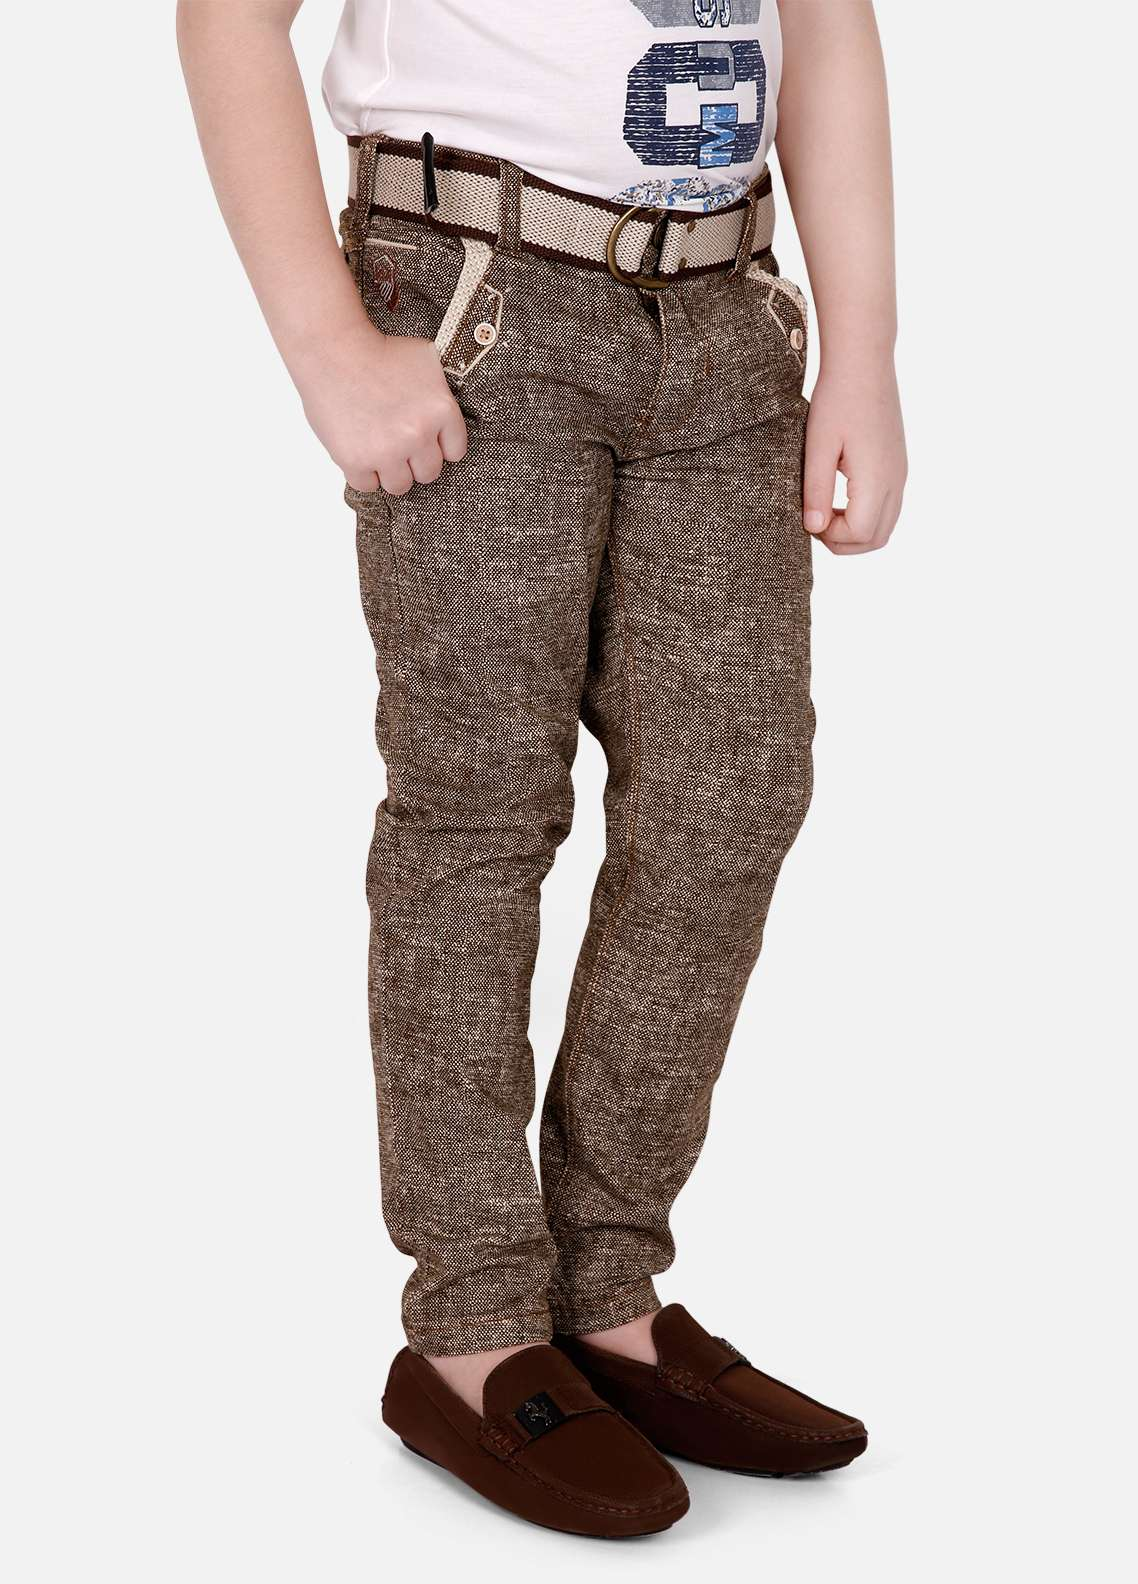 Edenrobe Cotton Plain Texture Pants for Boys - Brown EDK18P 5718